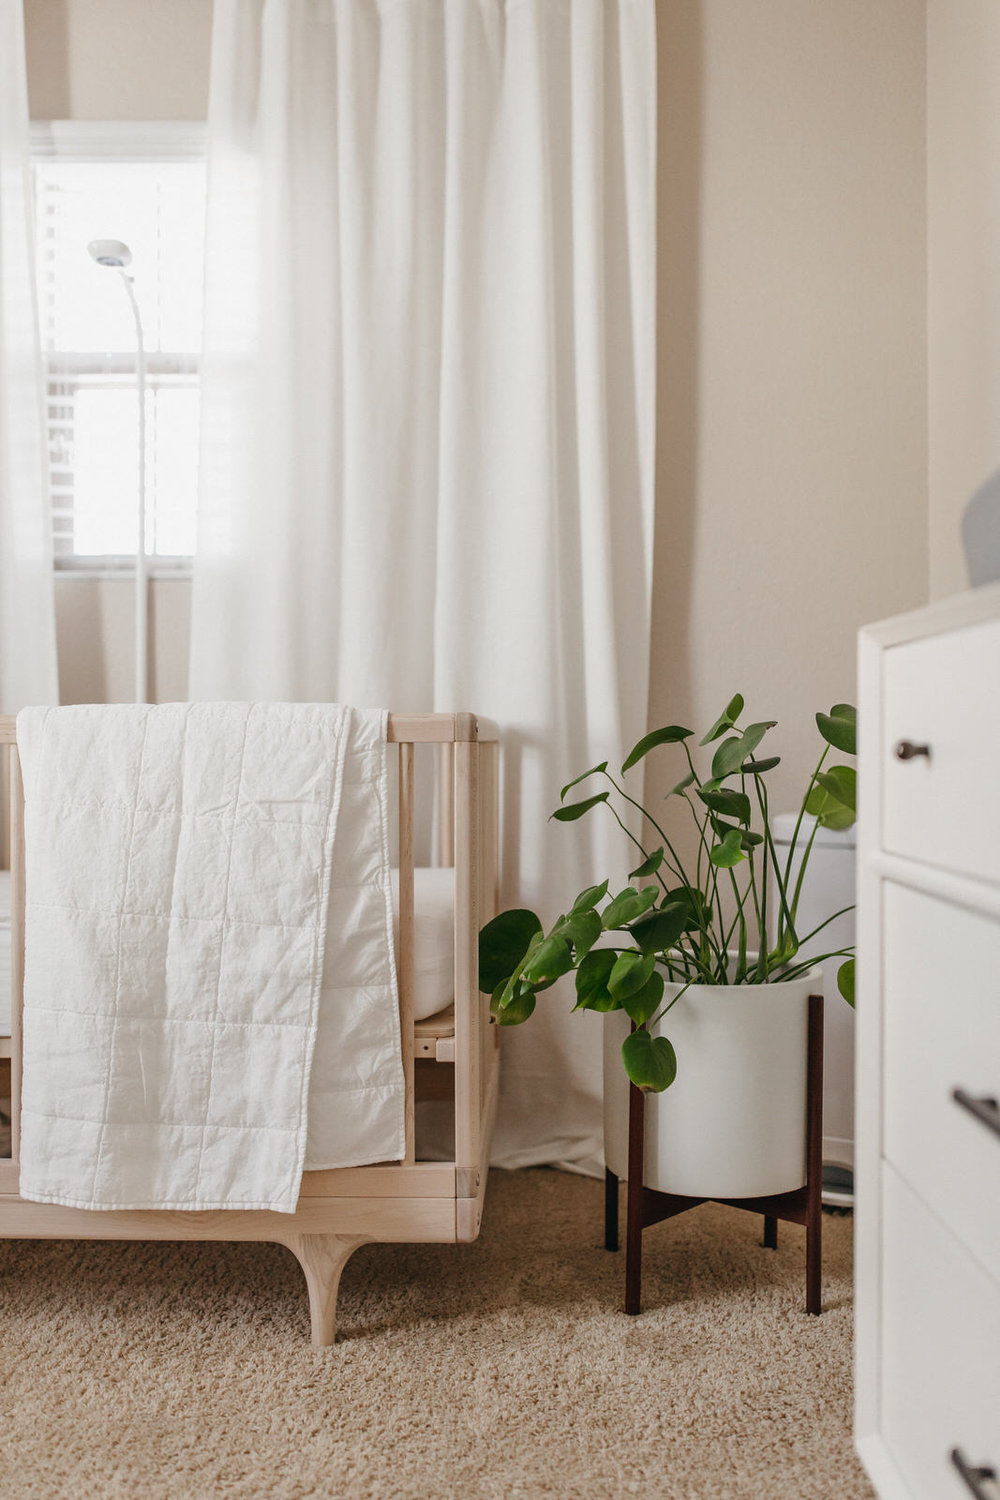 Chloé's Nursery - Baby's Room - V1 (44 of 48).jpg